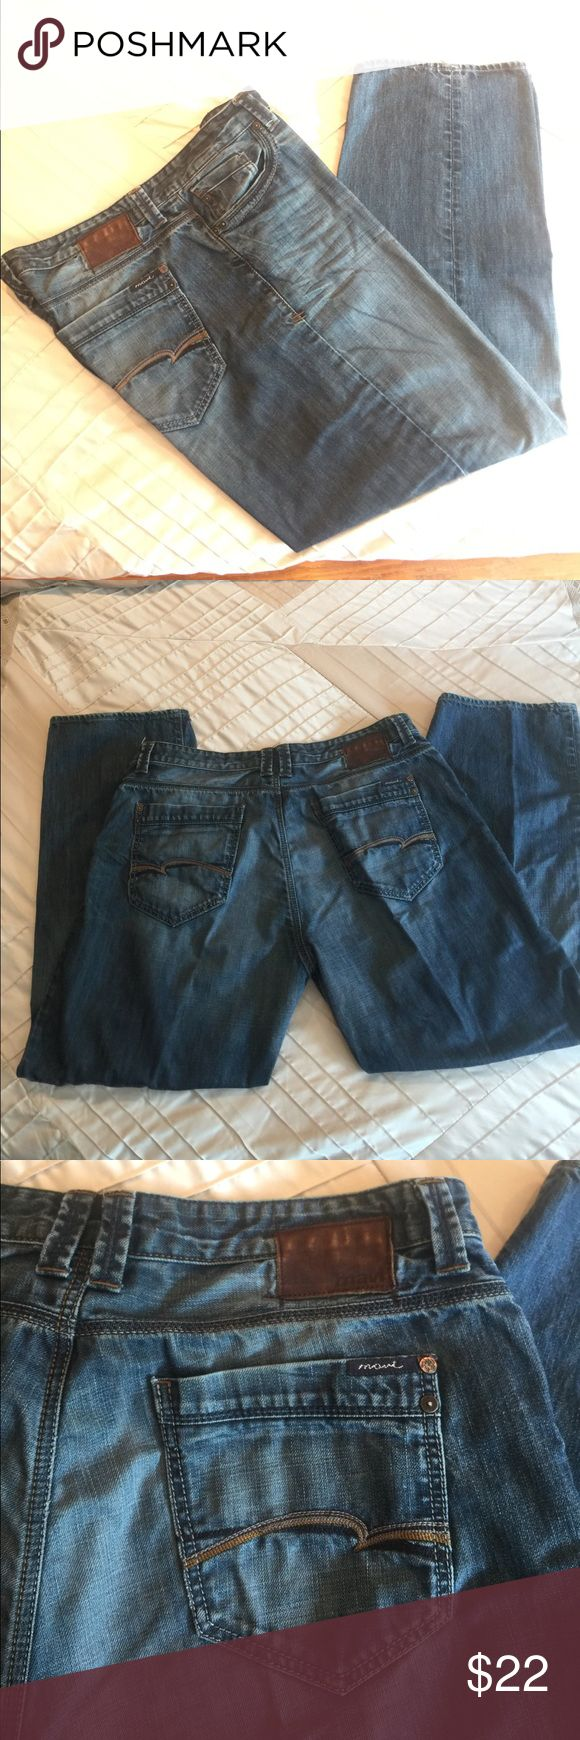 EUC Maxi Max Athletic Fit Medium Wash Jeans 40/32 EUC Mavi Max Athletic Fit Medium Wash Jeans 40/32. 5 pocket, button/zip fly style. No rips,l or stains, No wear on leg hem. All belt loops and rivets intact, no holes in pockets.  Original hem. Wide leg opening. Extra room throughout thighs.  Please ask questions if needed. Mavi Jeans Relaxed